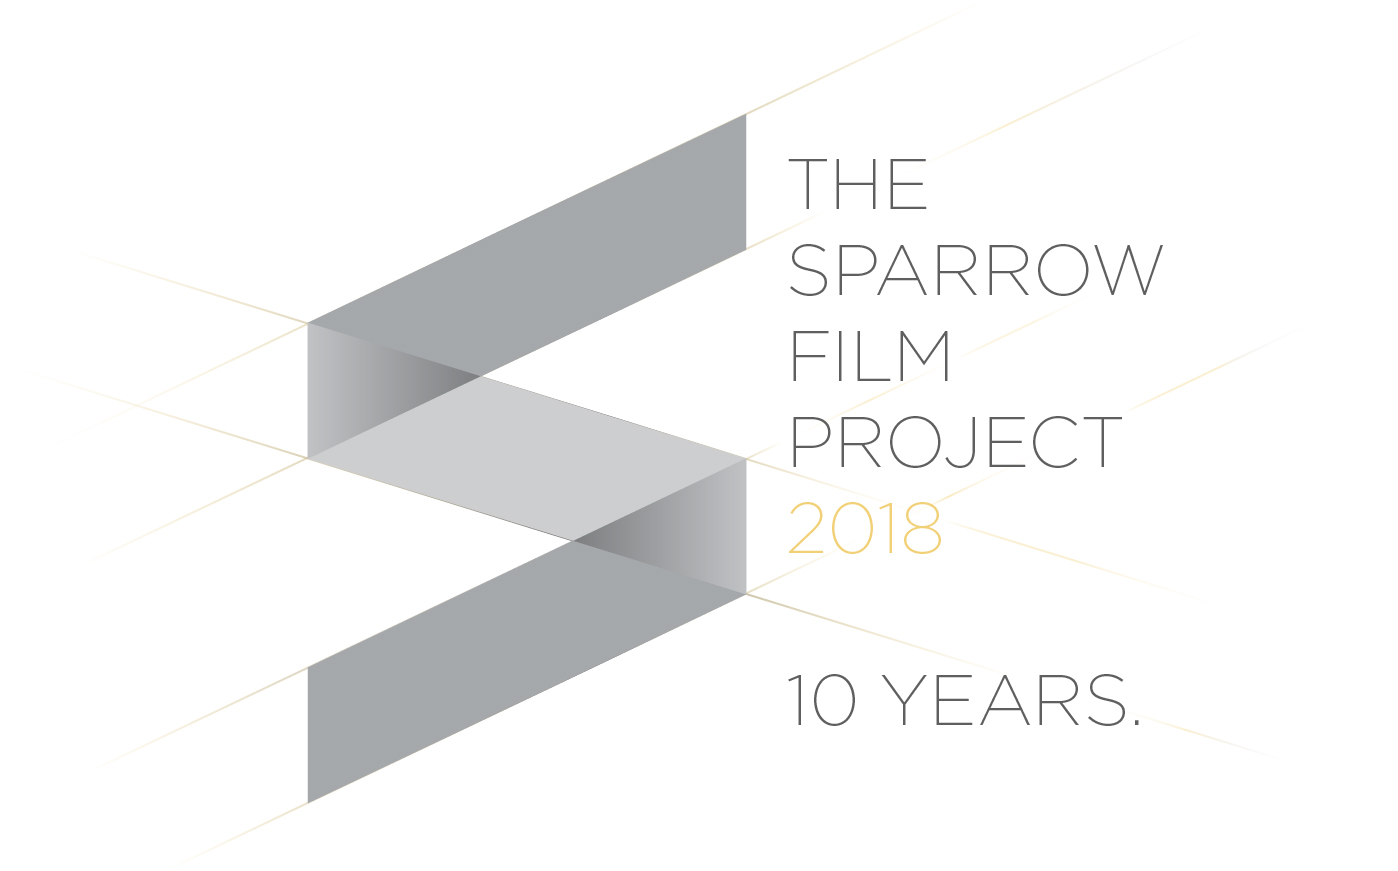 Sparrow Film Project